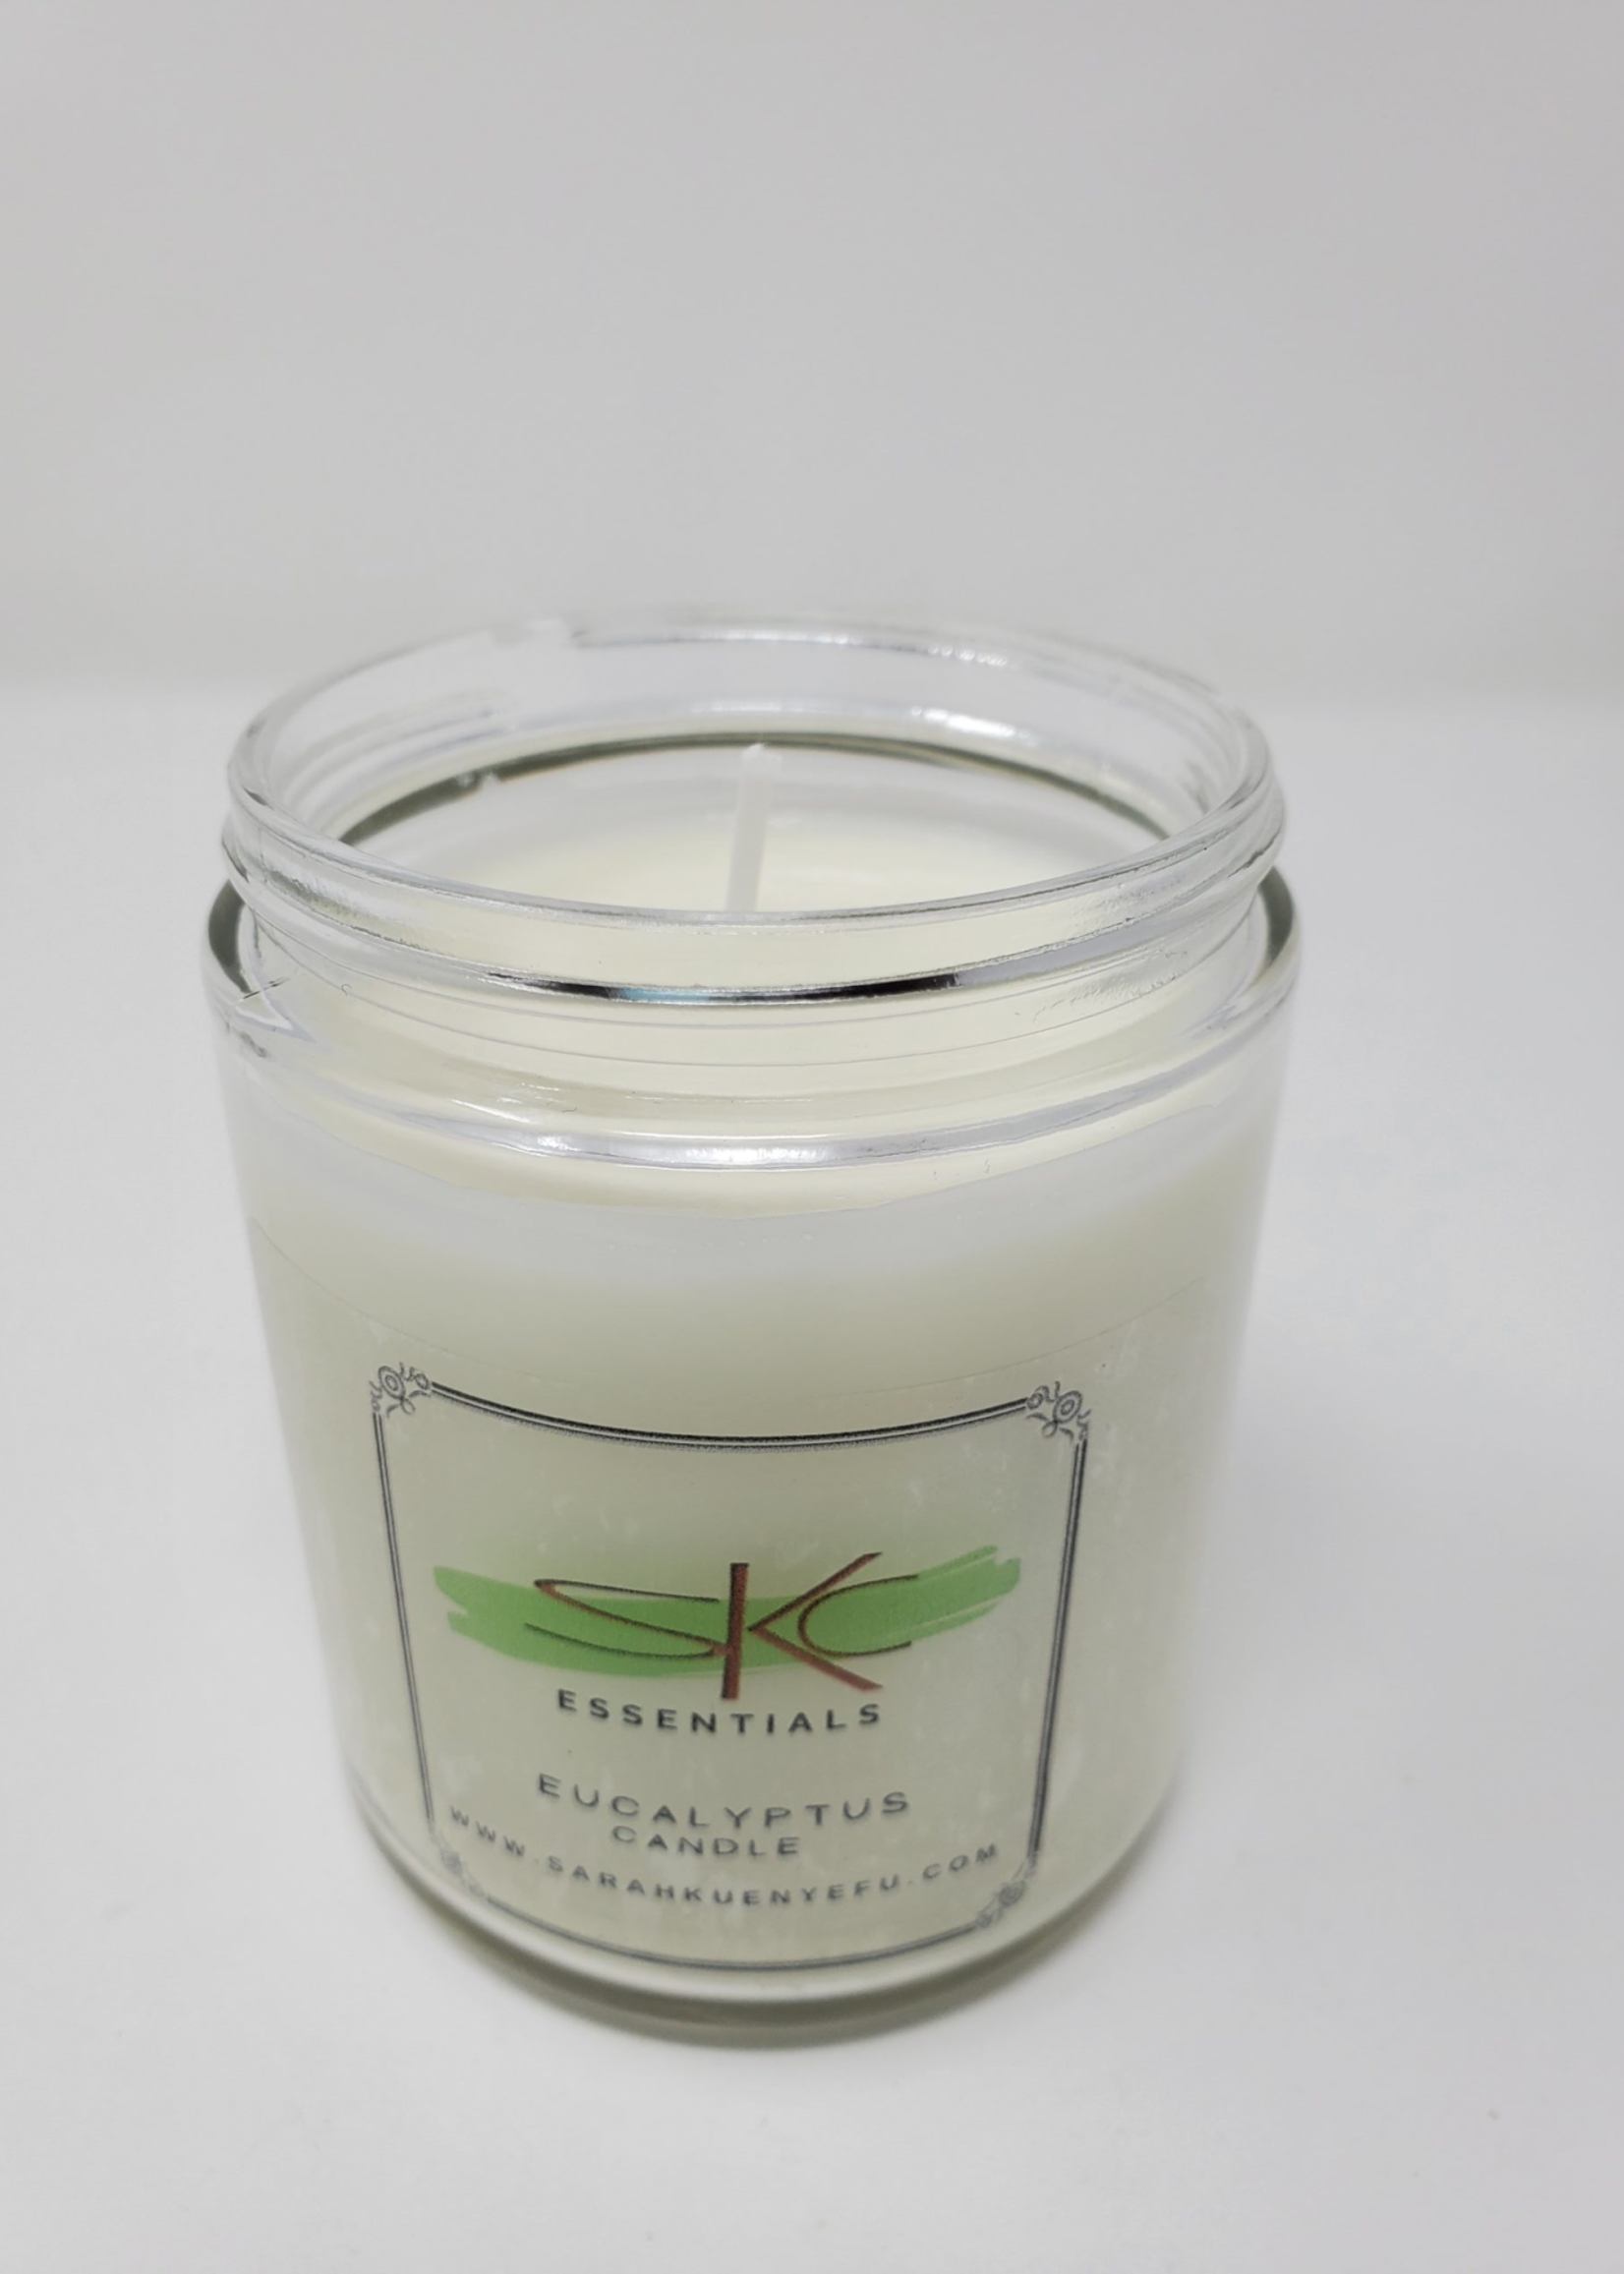 SKC SCENTED CANDLE